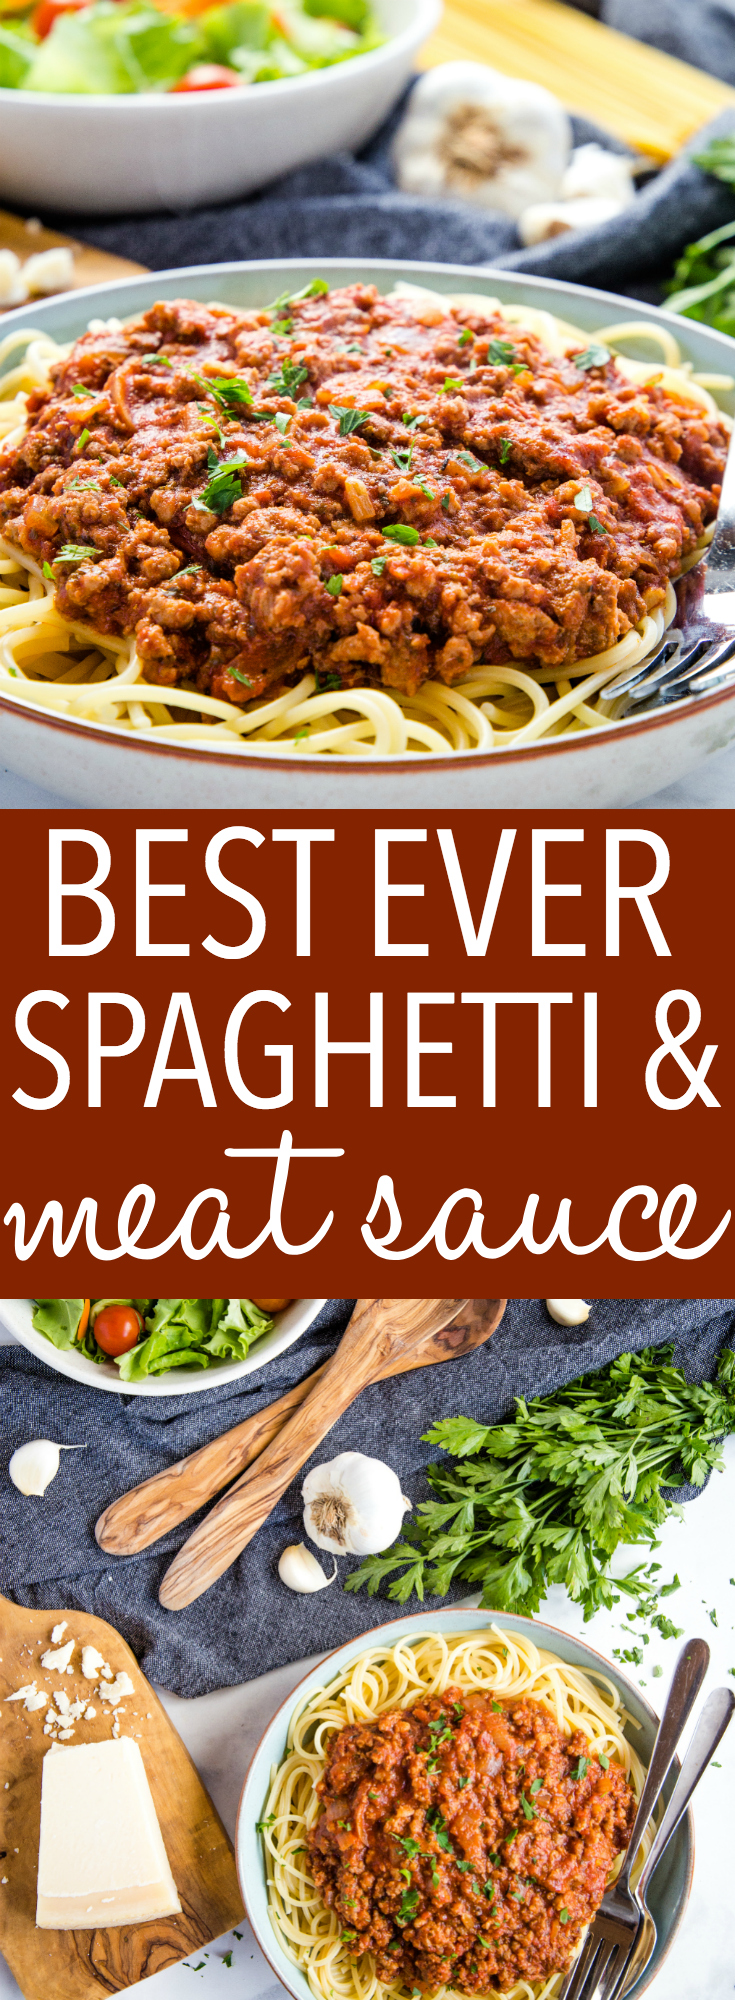 This Best Ever Spaghetti and Meat Sauce recipe is the perfect Italian-style weeknight meal for the whole family - a rich, meaty sauce served over your favourite pasta! Recipe from thebusybaker.ca! #spaghetti #meatsauce #pasta #spaghettisauce #dinner #mealidea #familymeal #foodblog #kidfriendly #foodforkids #restaurantrecipe #recipe